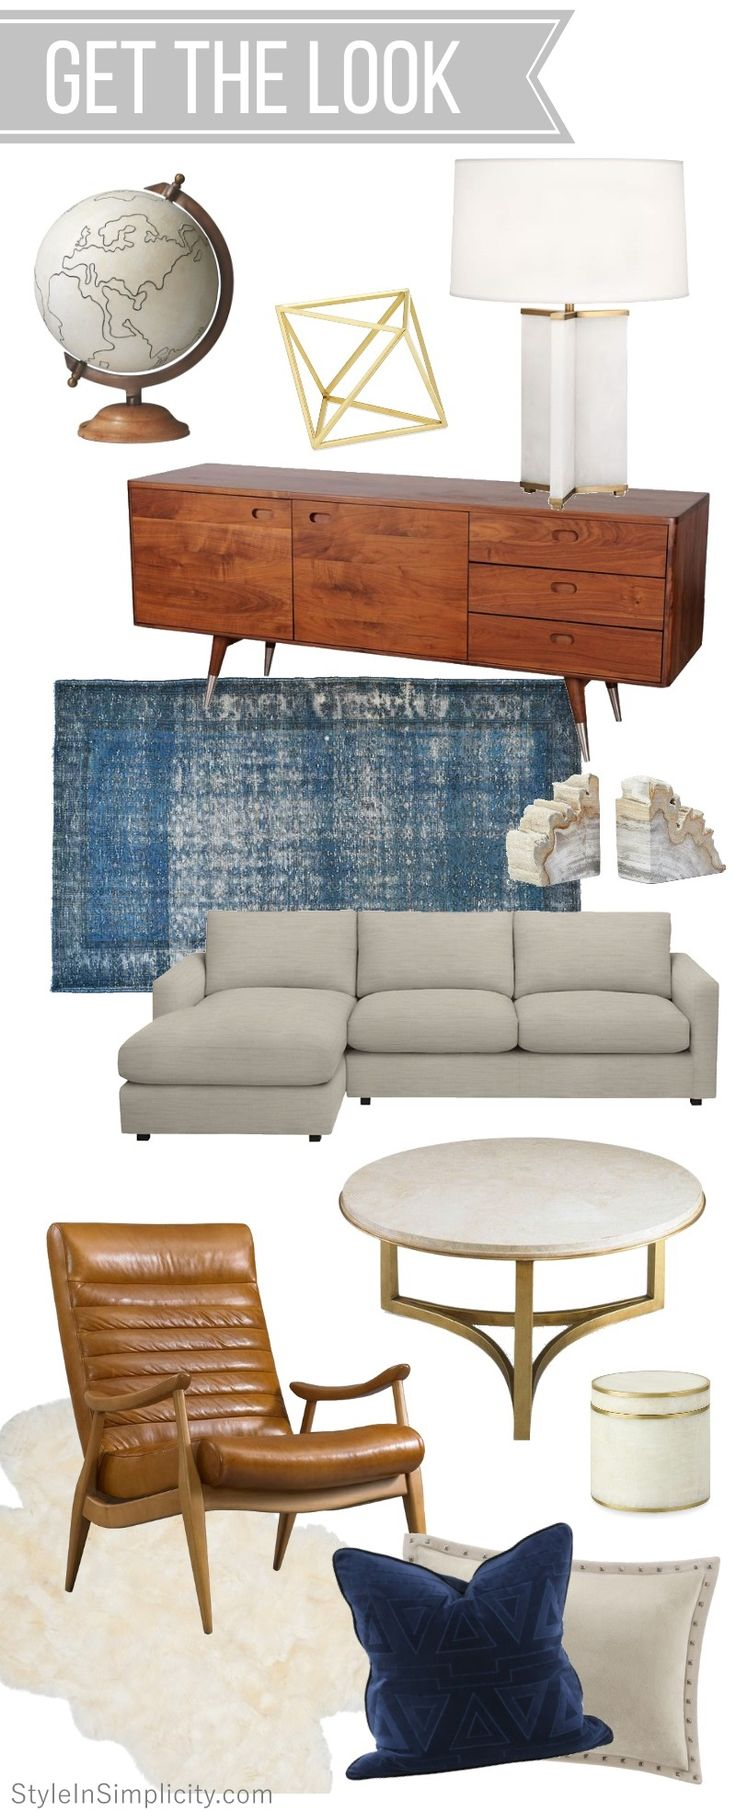 Best Ideas About Modern Living Room Furniture On Pinterest - Modern style living room furniture